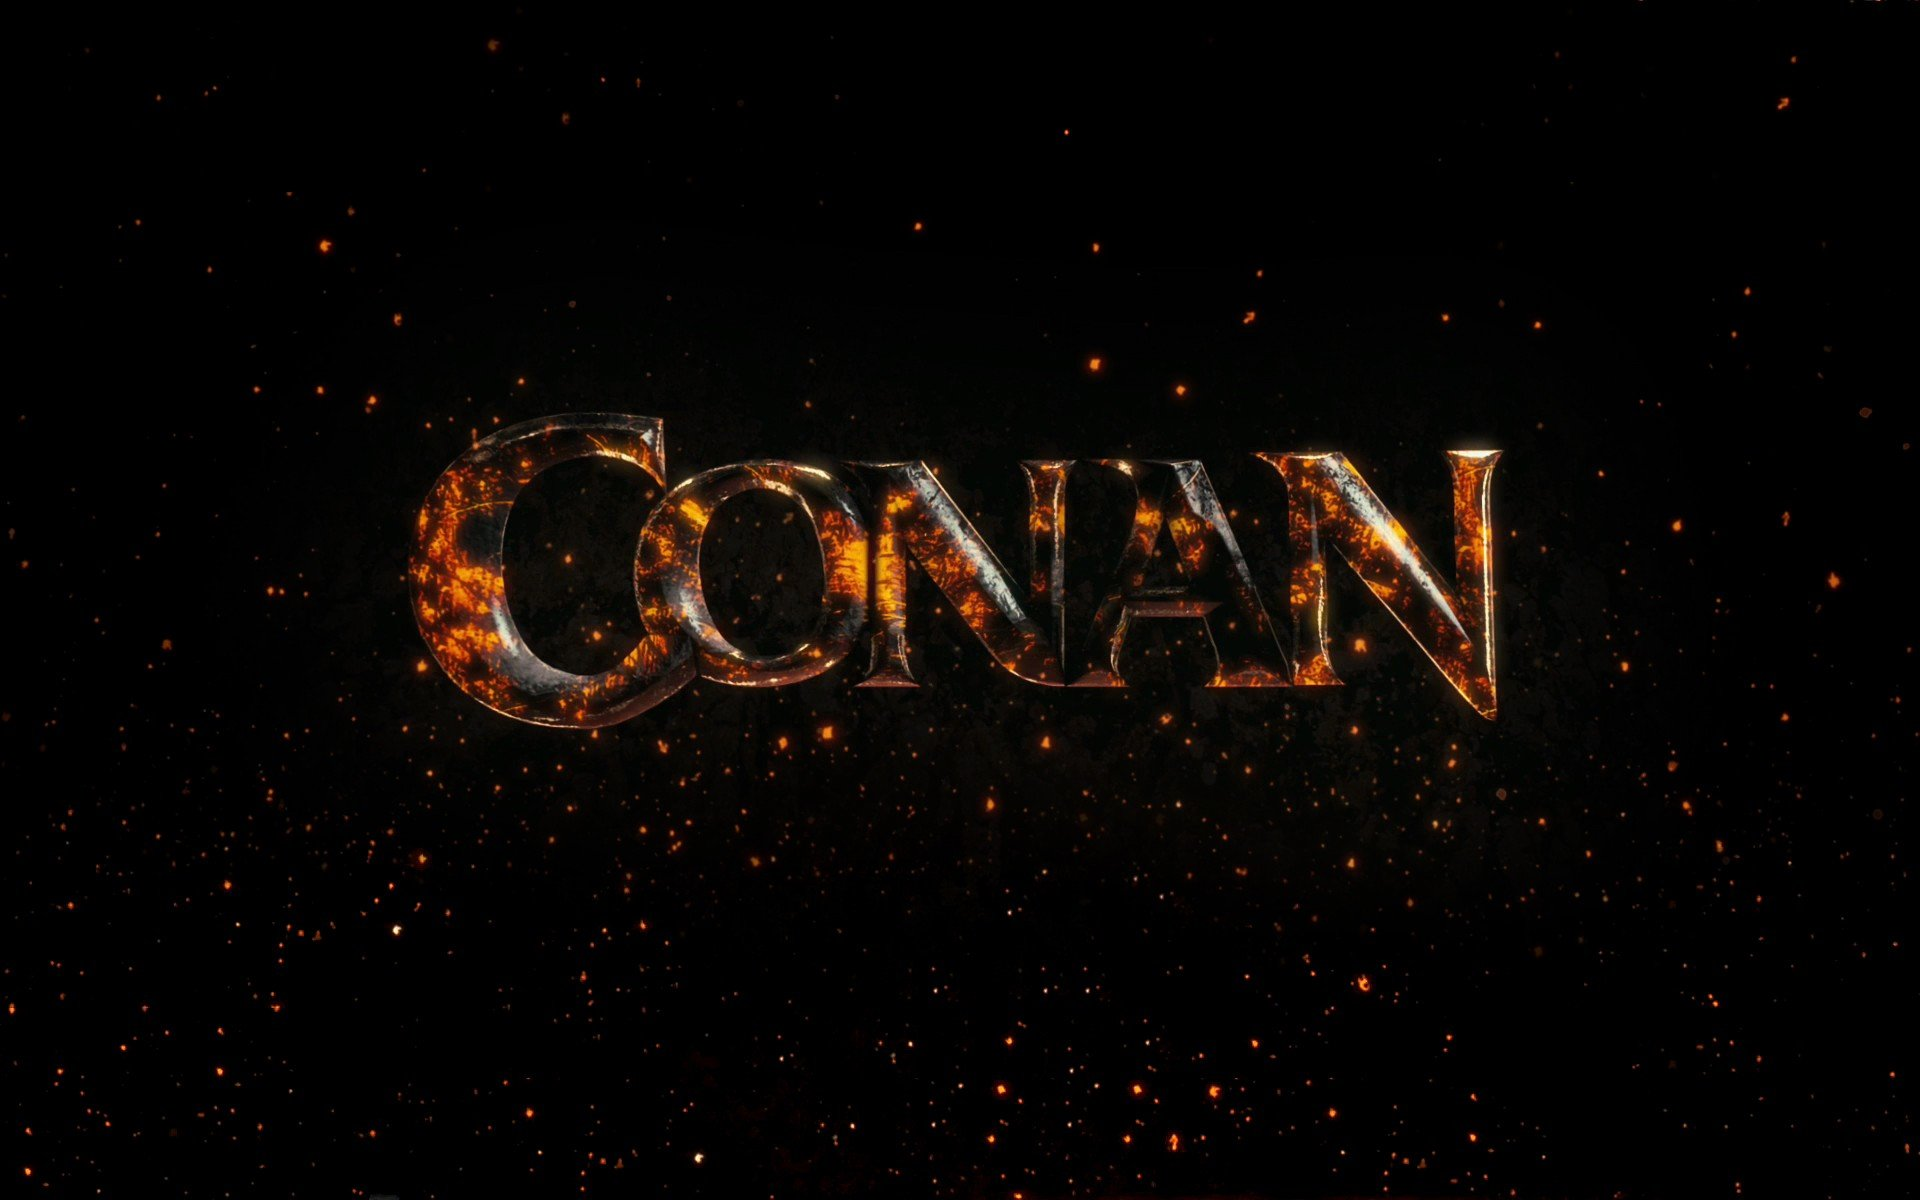 the Conan Wallpaper Conan iPhone Wallpaper Conan Android Wallpaper 1920x1200